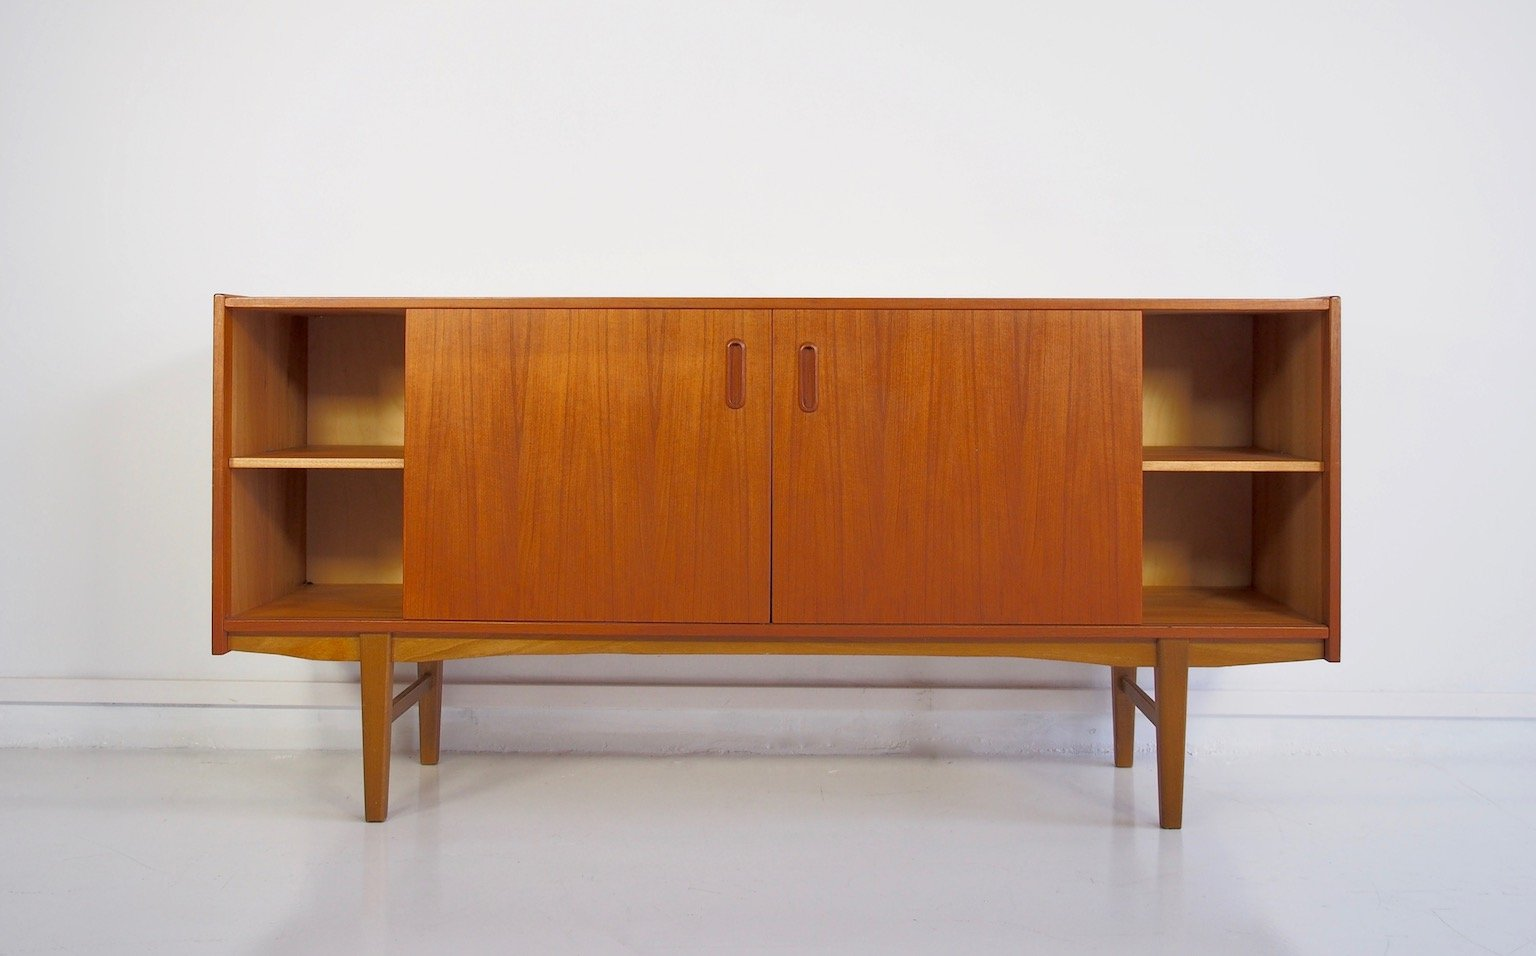 Gewaltig Sideboard Modern Dekoration Von Scandinavian Teak With Shelves And Drawers, 1960s